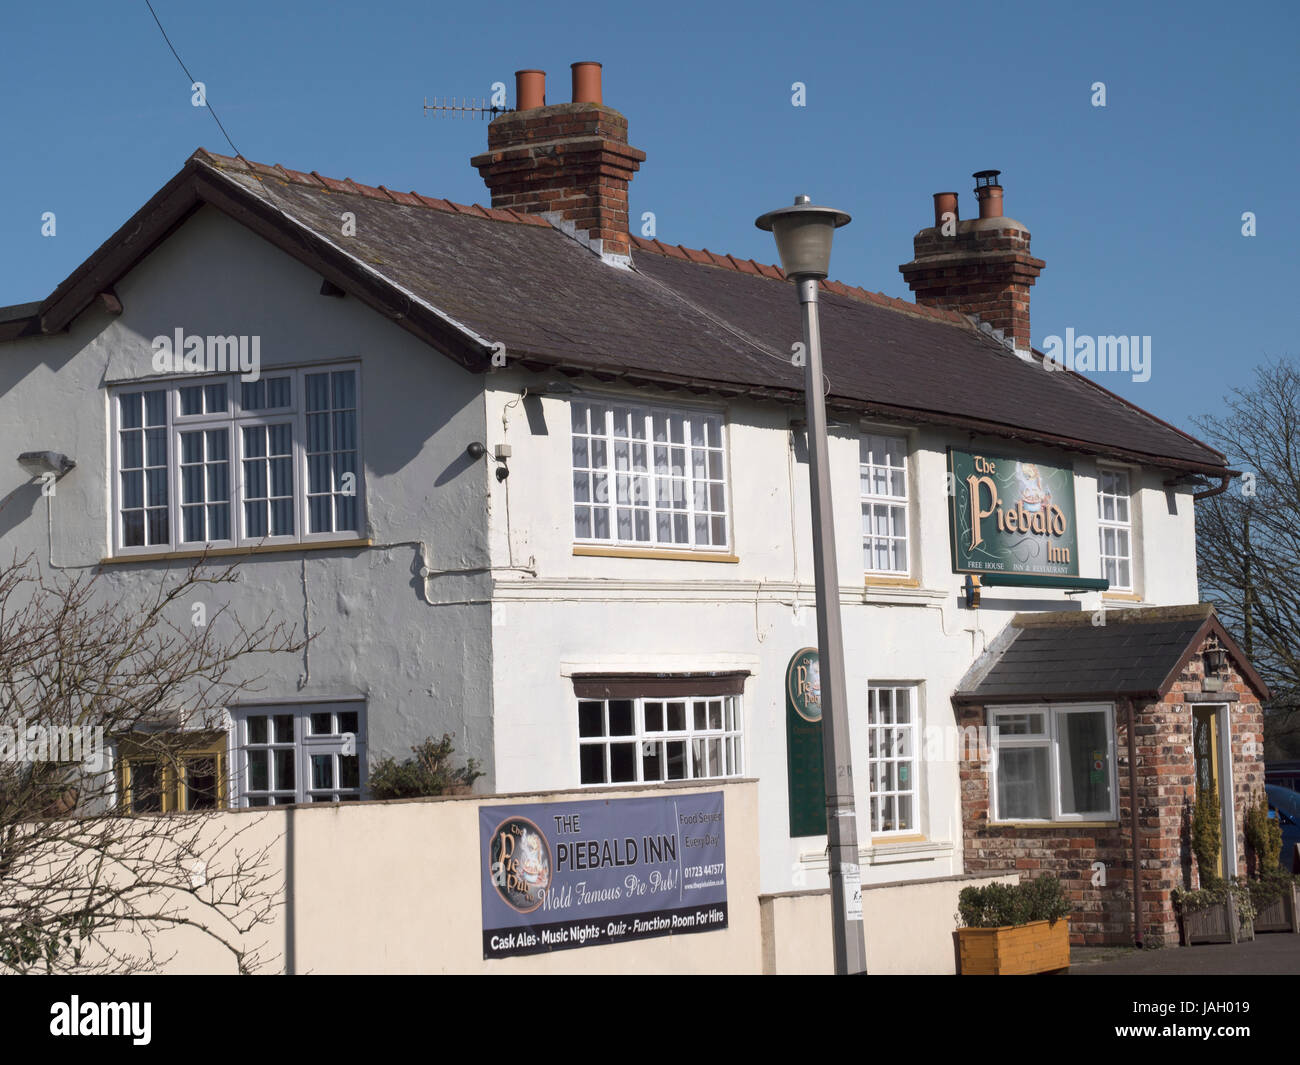 The Piebald Inn, Sands Lane, Hunmanby, Filey, Yorkshire, England, UK - Stock Image